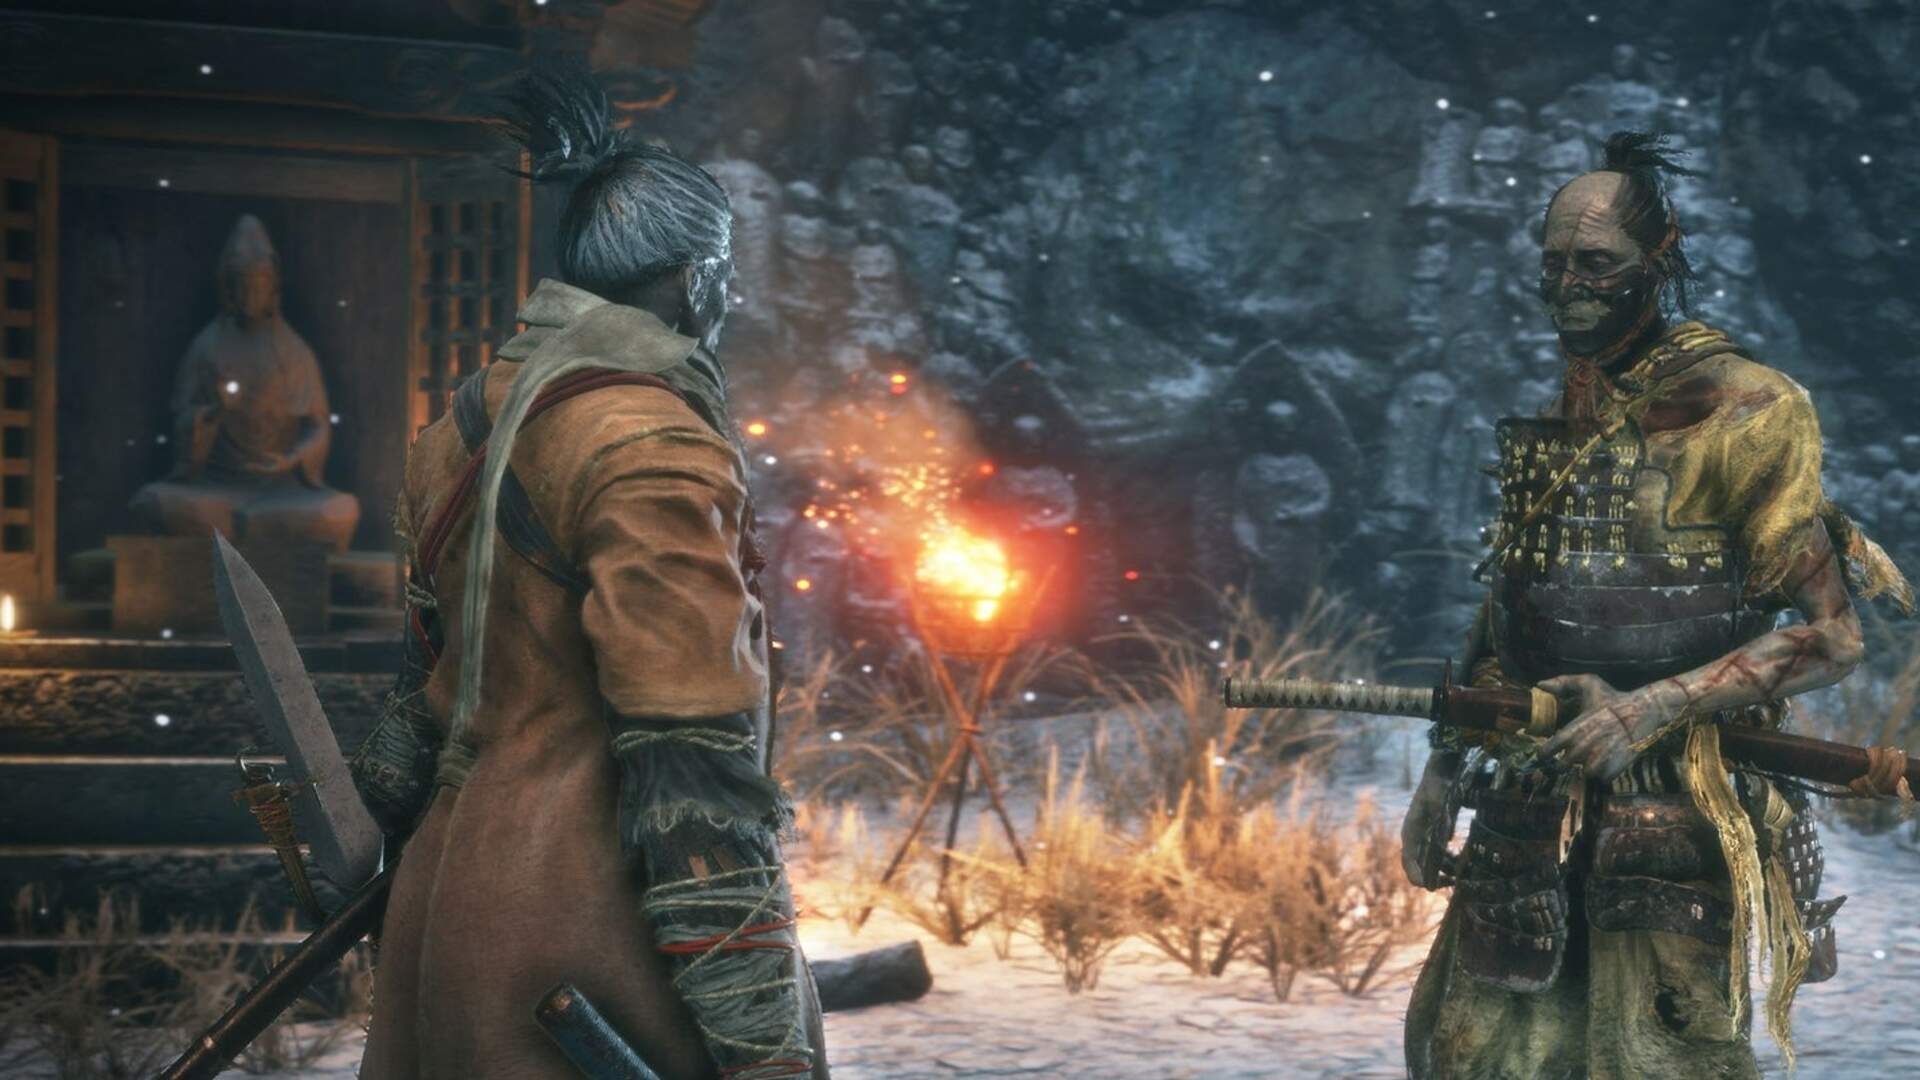 There's a Comic For Sekiro's Hanbei the Undying